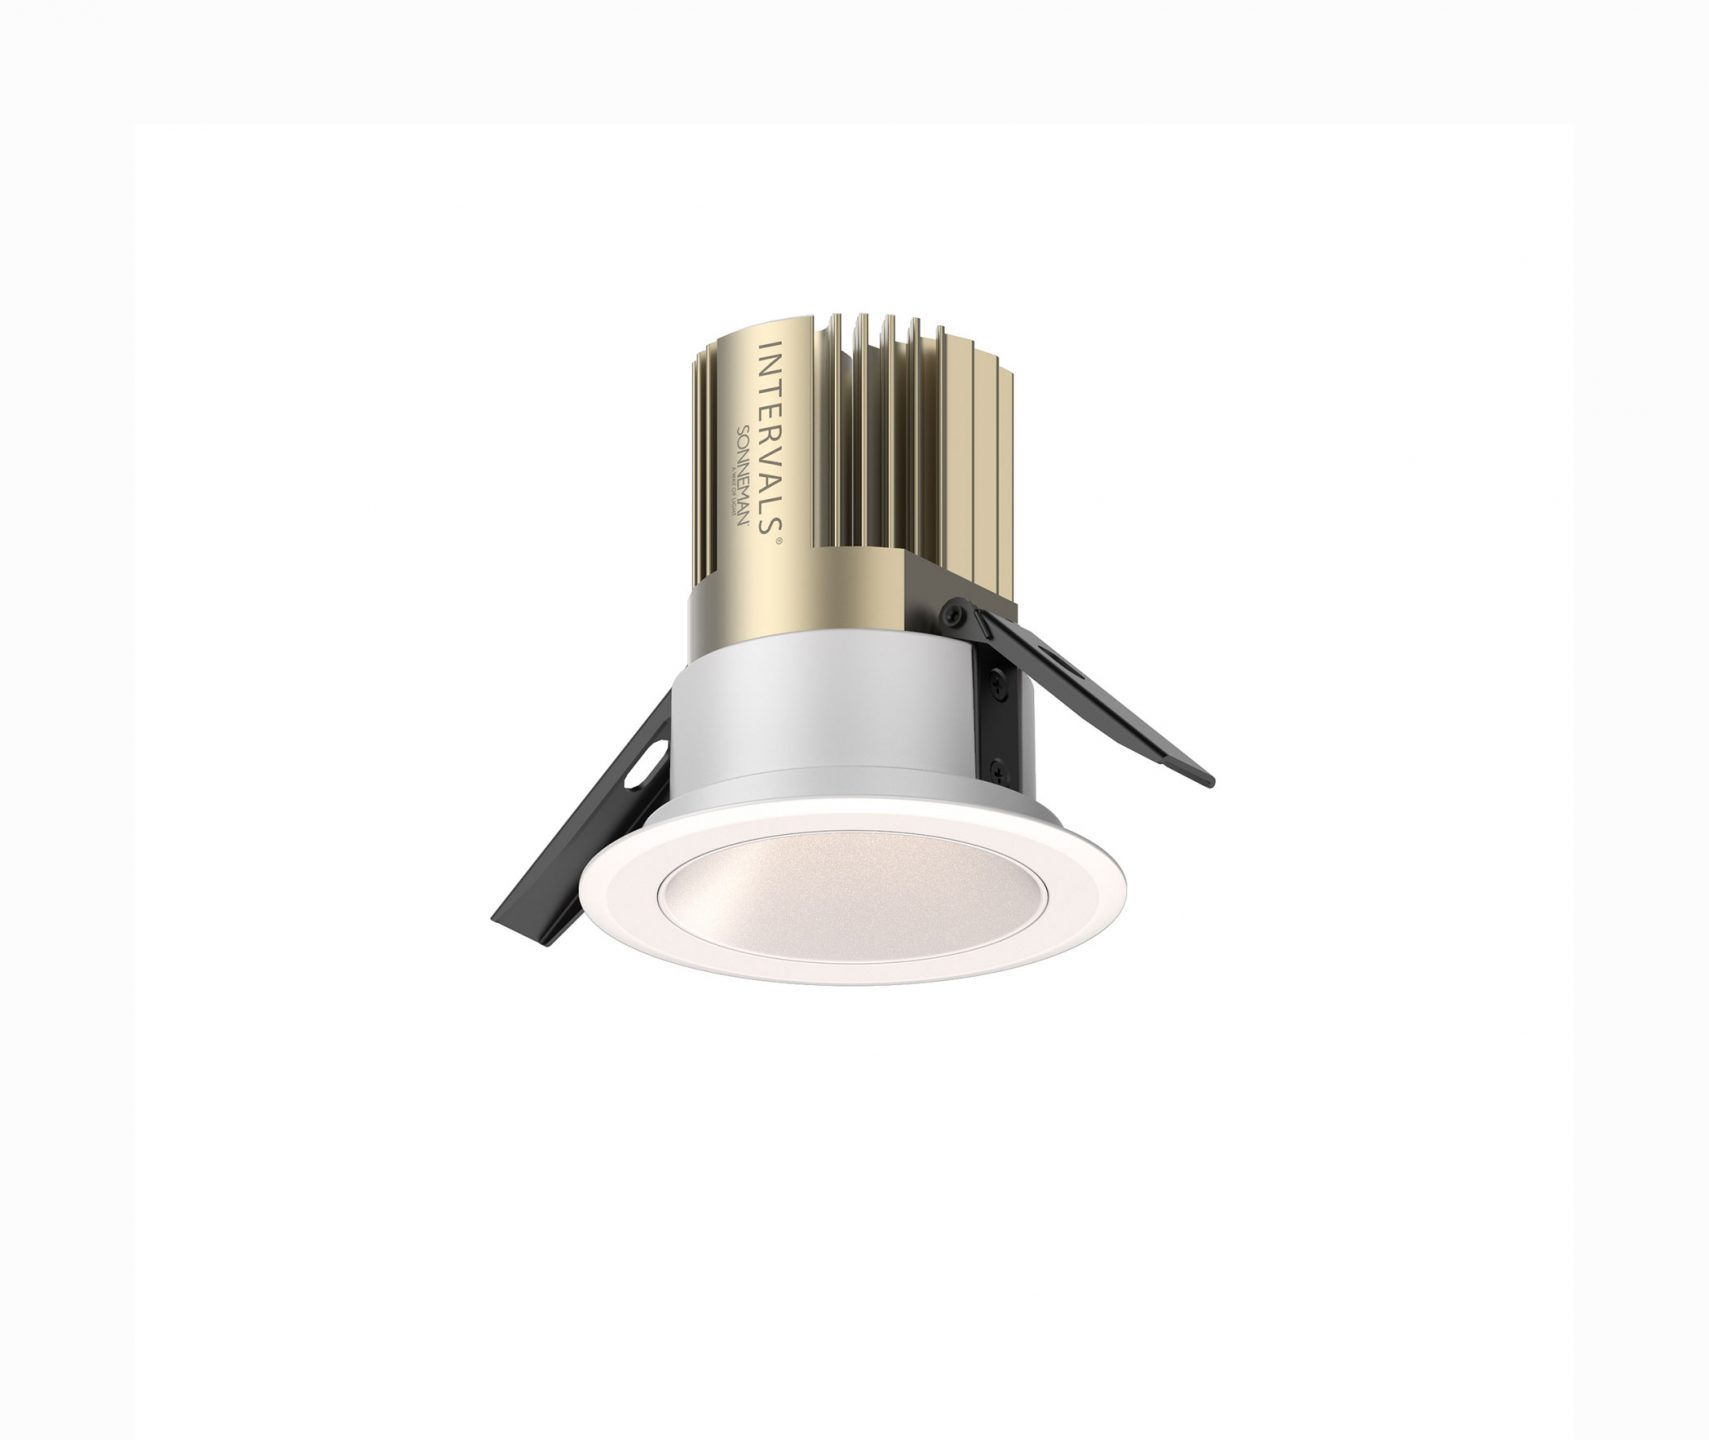 SONNEMAN_Intervals-Recessed-Downlights-Fixed-Round-Bevel-2_int_products